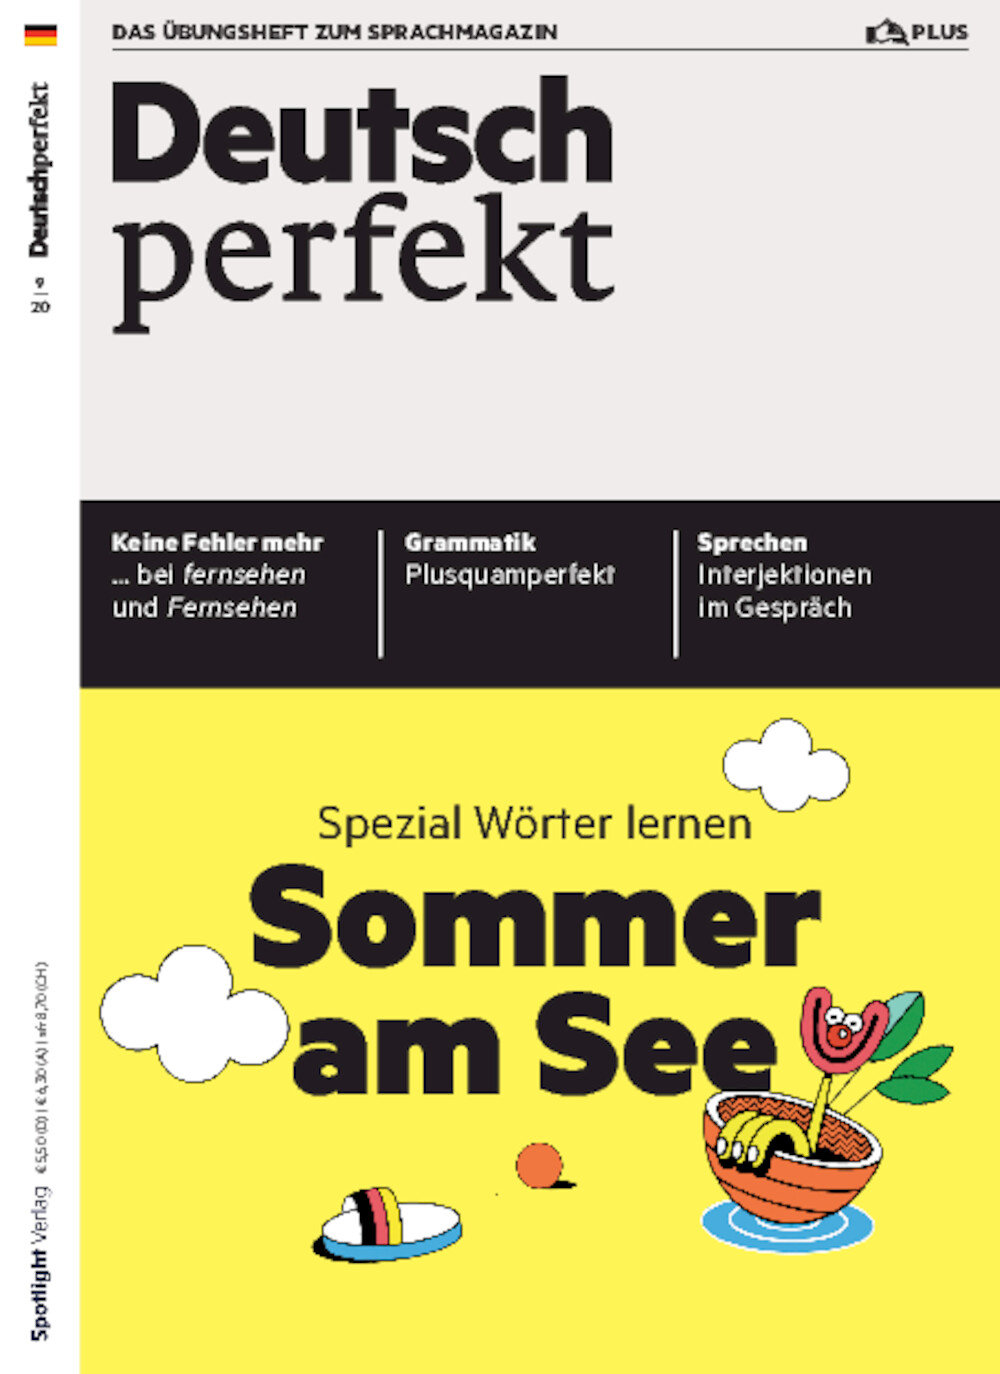 Deutsch perfekt PLUS 09/2020